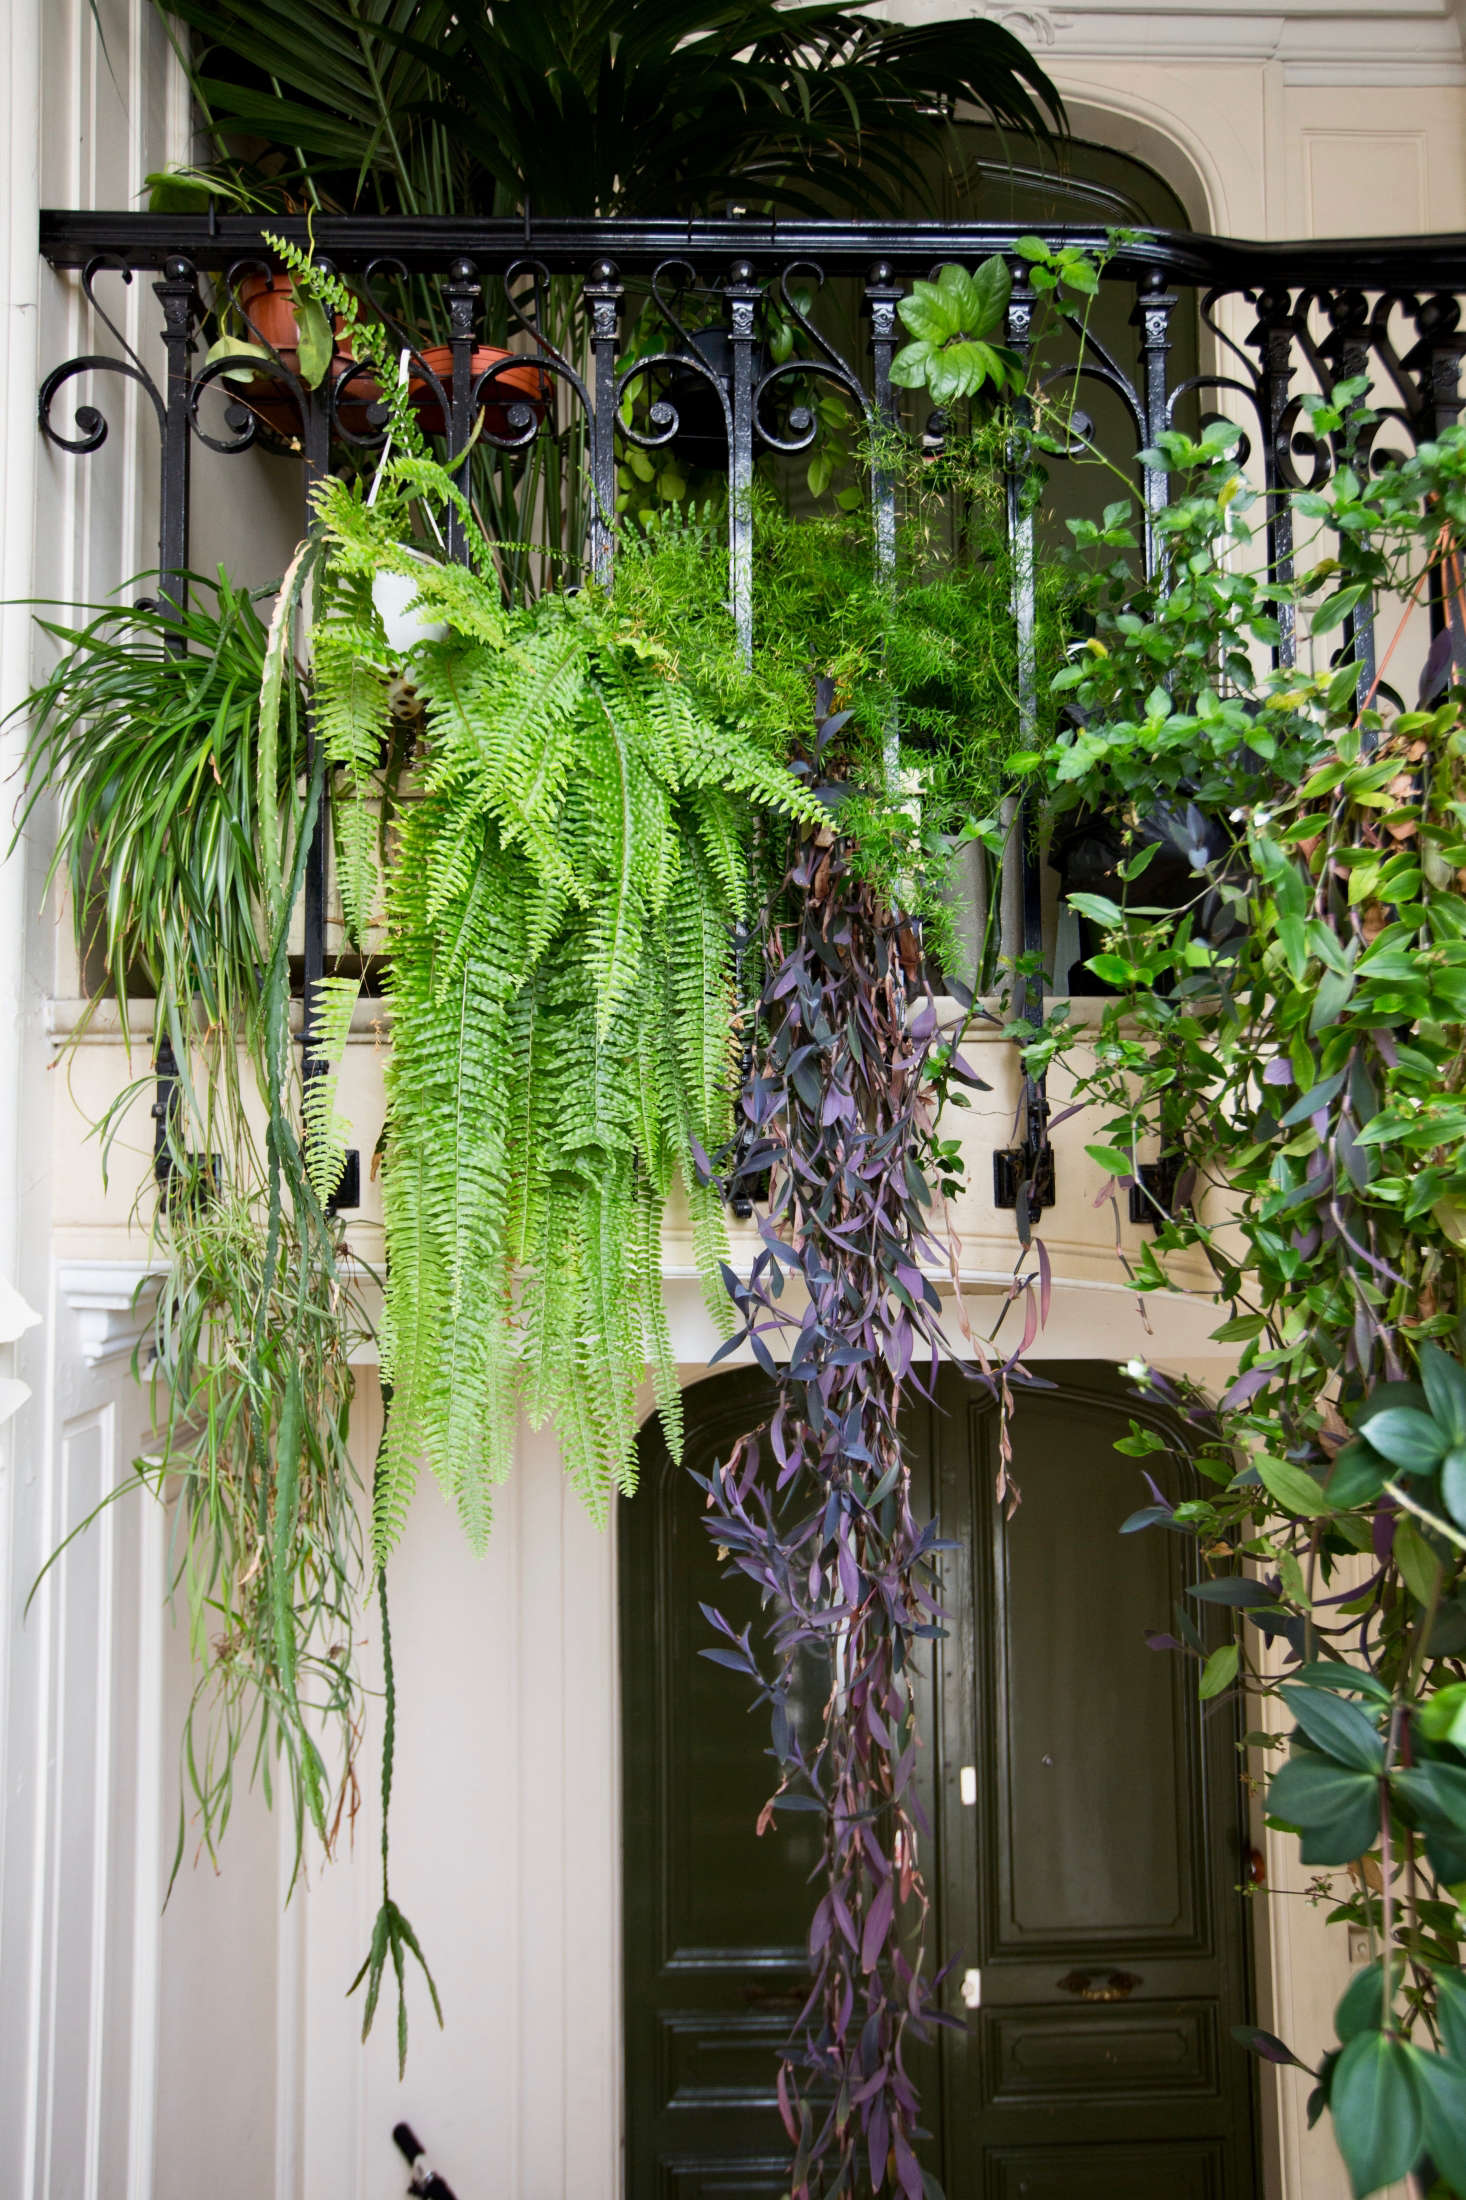 8 Houseplant Ideas To Steal From A Grand Parisian Escalier